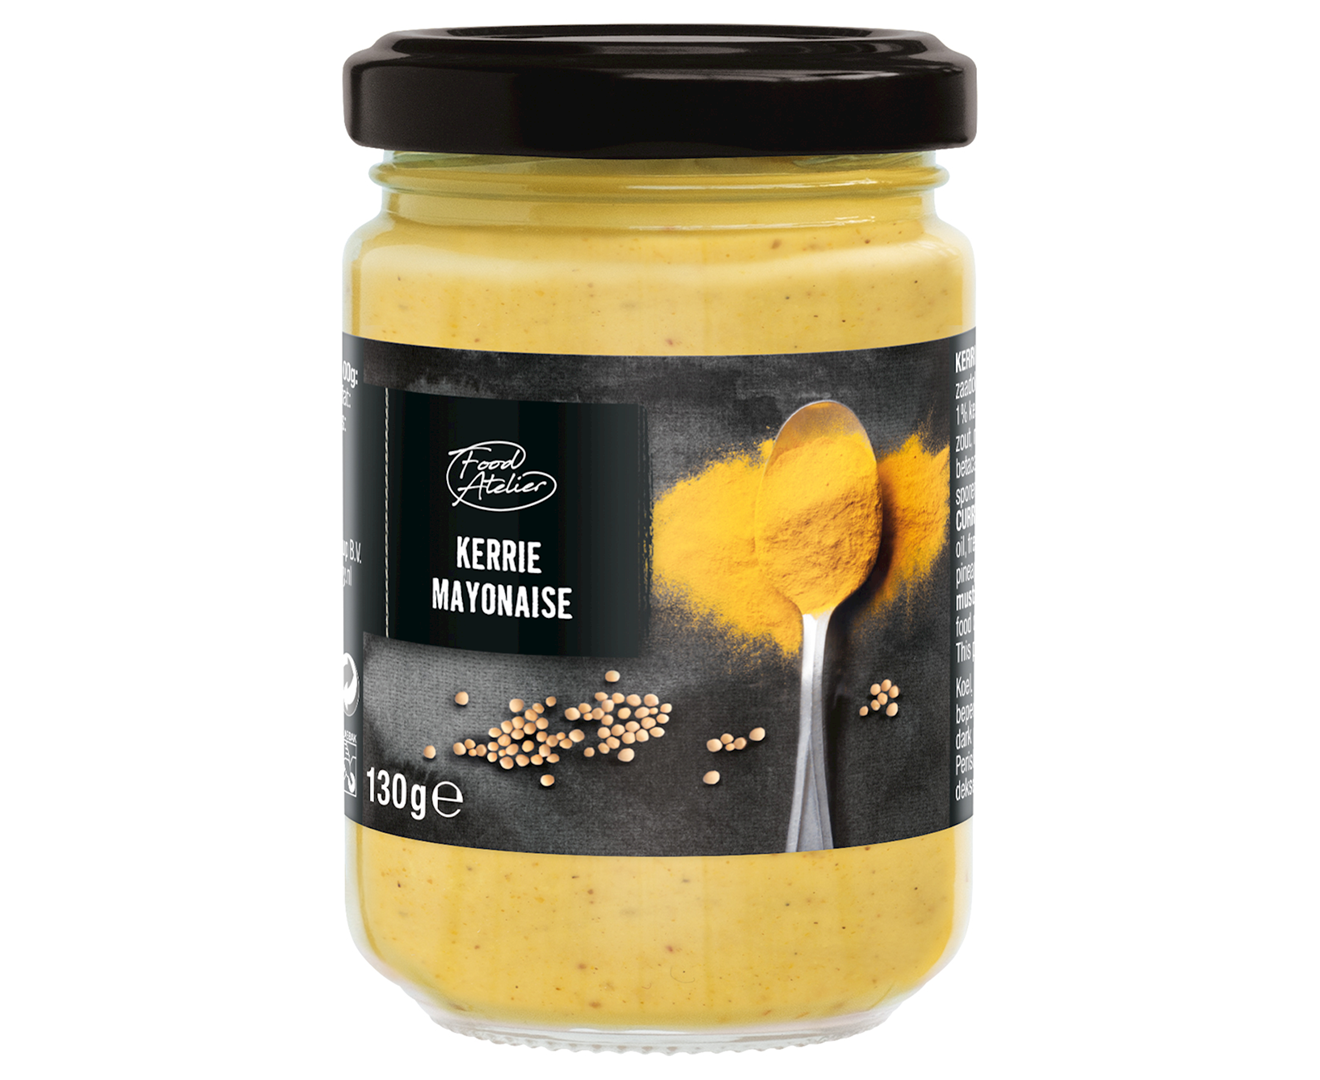 Productafbeelding Kerrie mayonaise Food atelier 130g pot